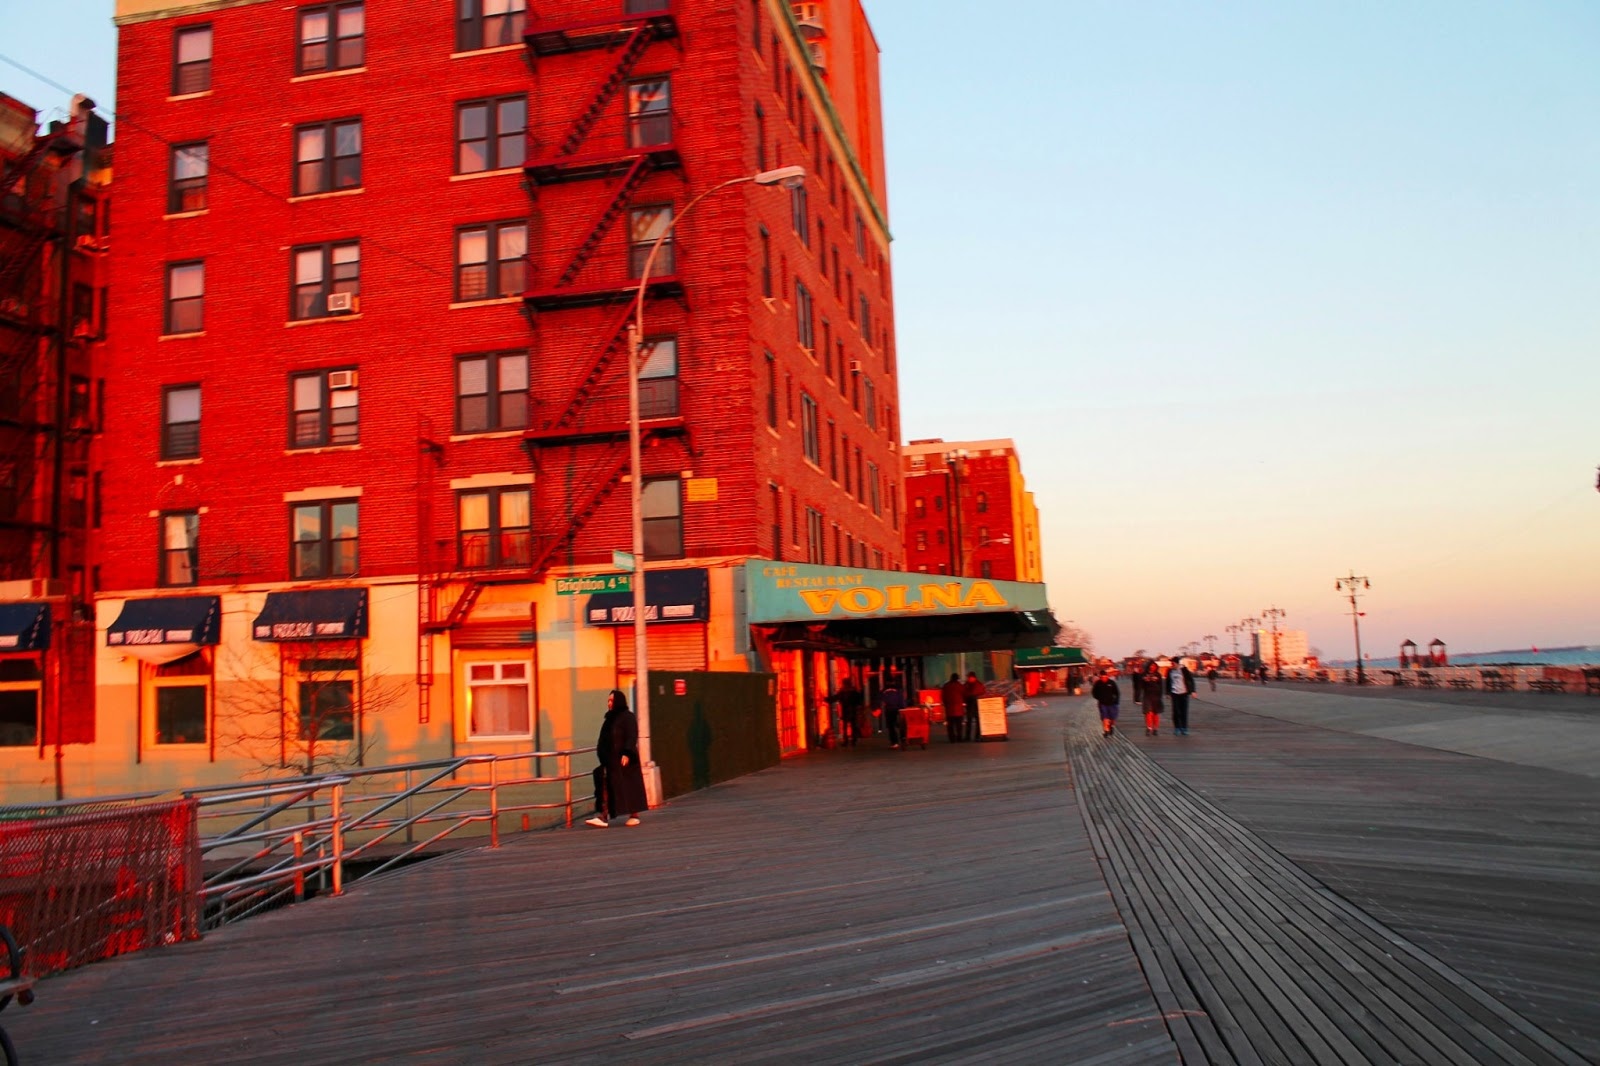 brighton-beach-new-york-reigelmann-broadwalk